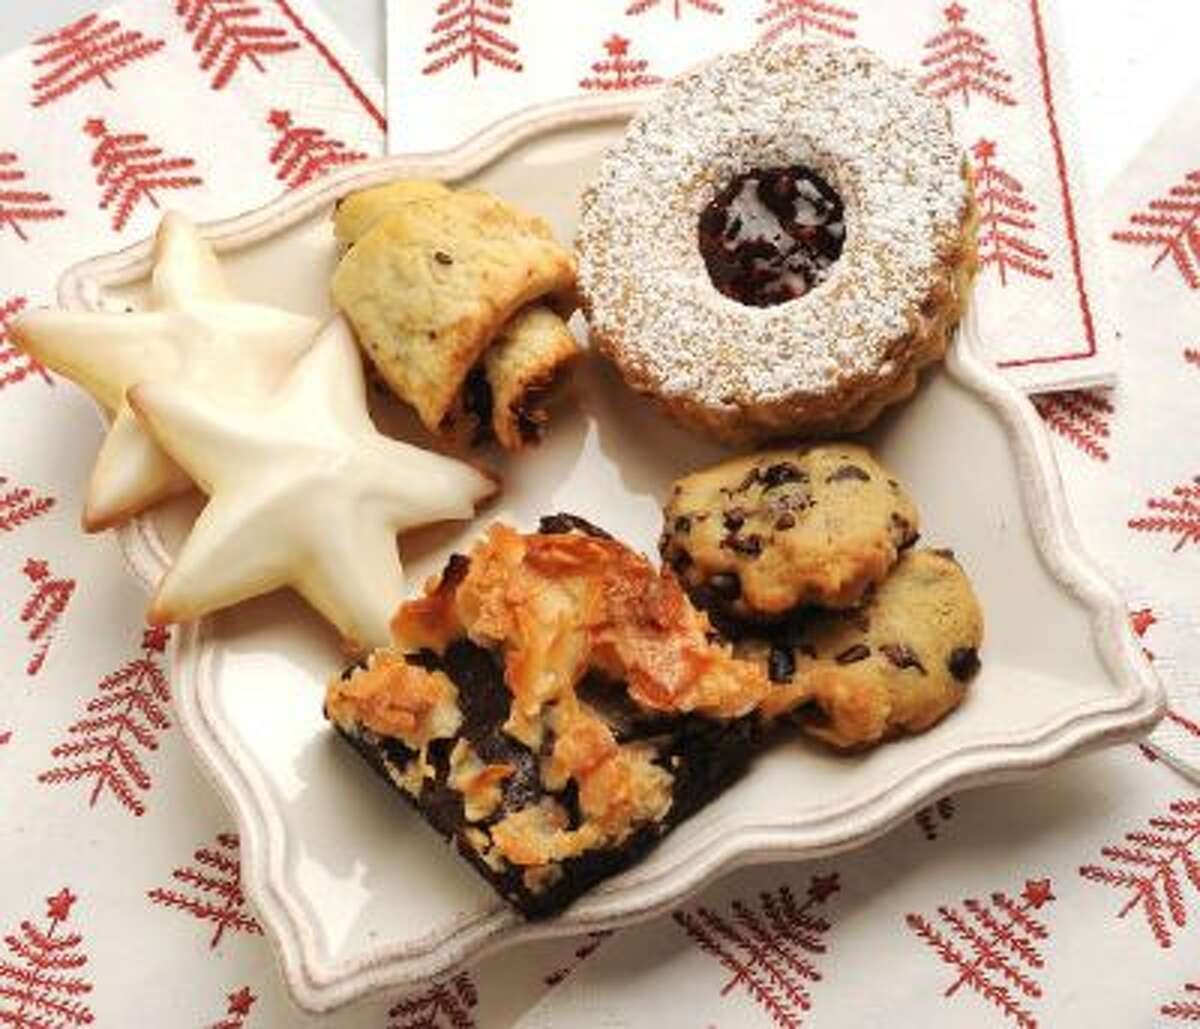 Clockwise from top right, Raspberry Linzer Cookie, Nibby Cookies, Lacy Coconut Brownie, Sugar Cookie Stars and Hamentaschen with Cocoa Nibs and Currants, photographed in Walnut Creek, Calif., on Tuesday, Dec. 2, 2013.